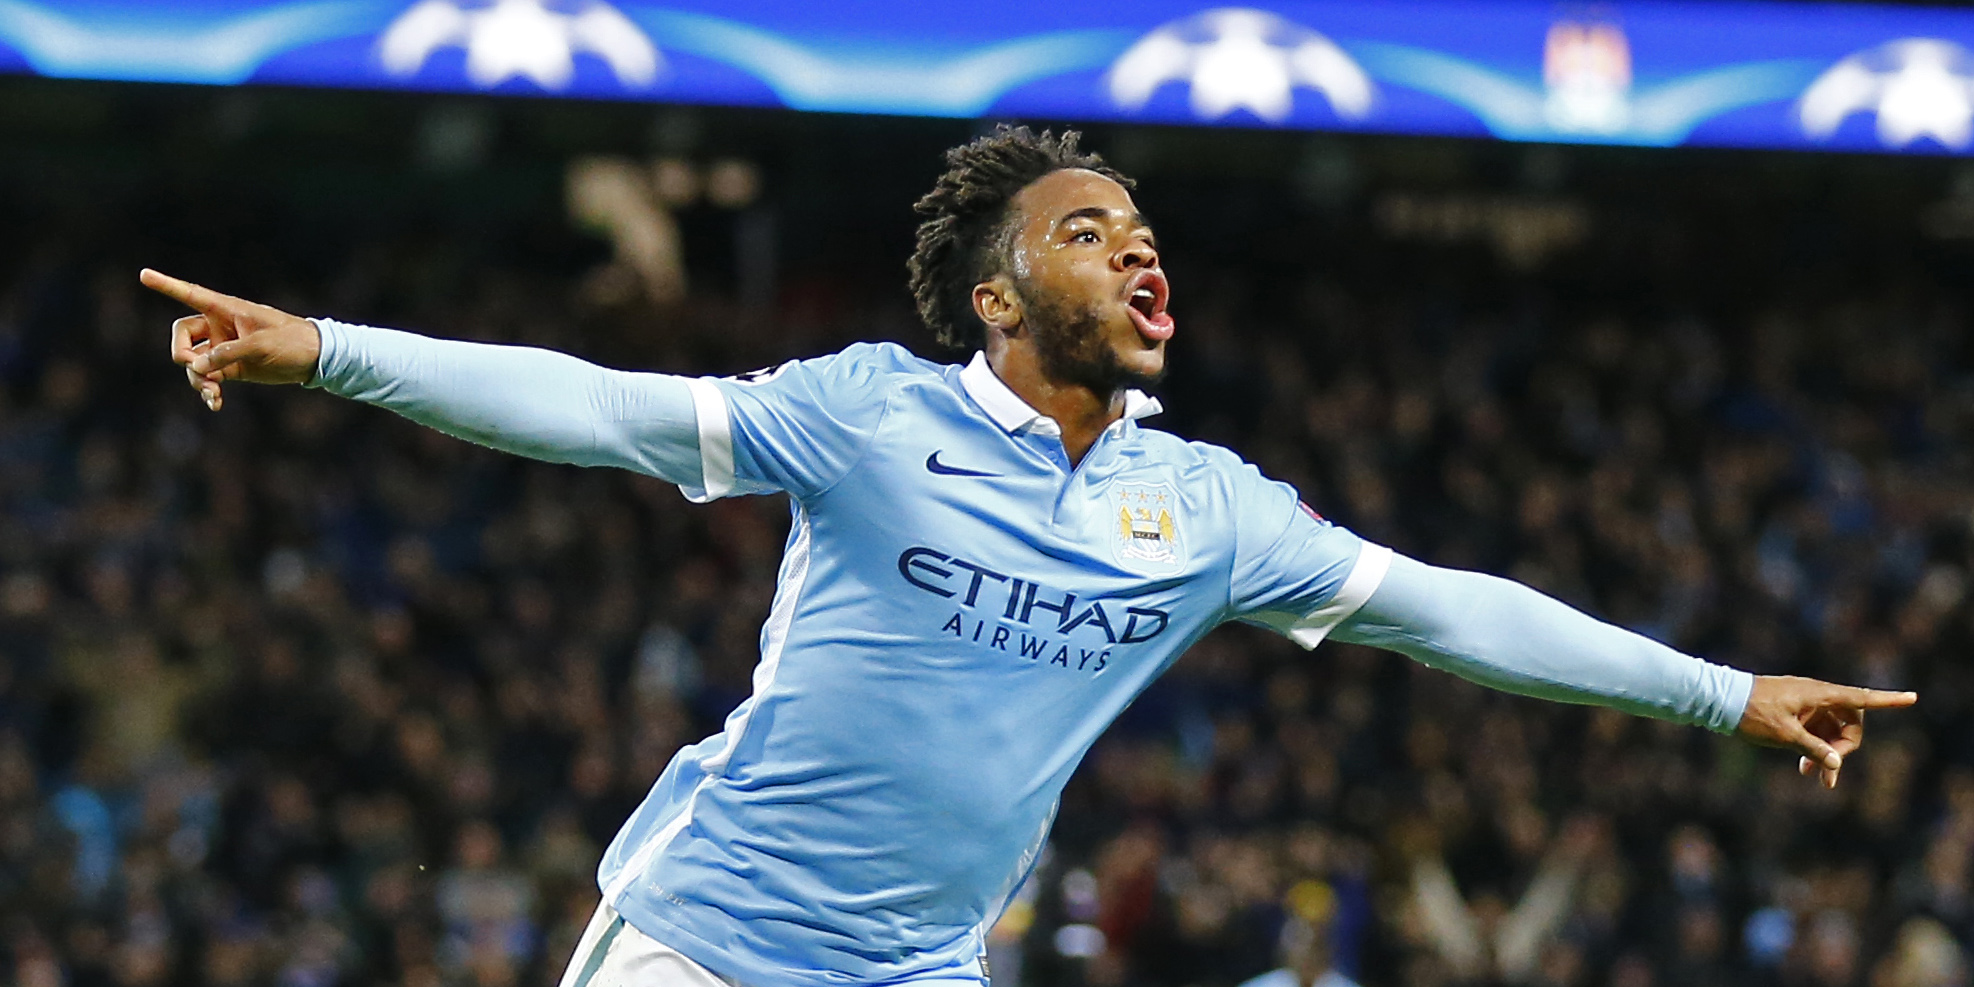 Raheem Sterling celebrates after scoring the third goal for Manchester City against Borussia Monchengladbach at Etihad Stadium on Tuesday, December 8, 2015. Photo: Reuters